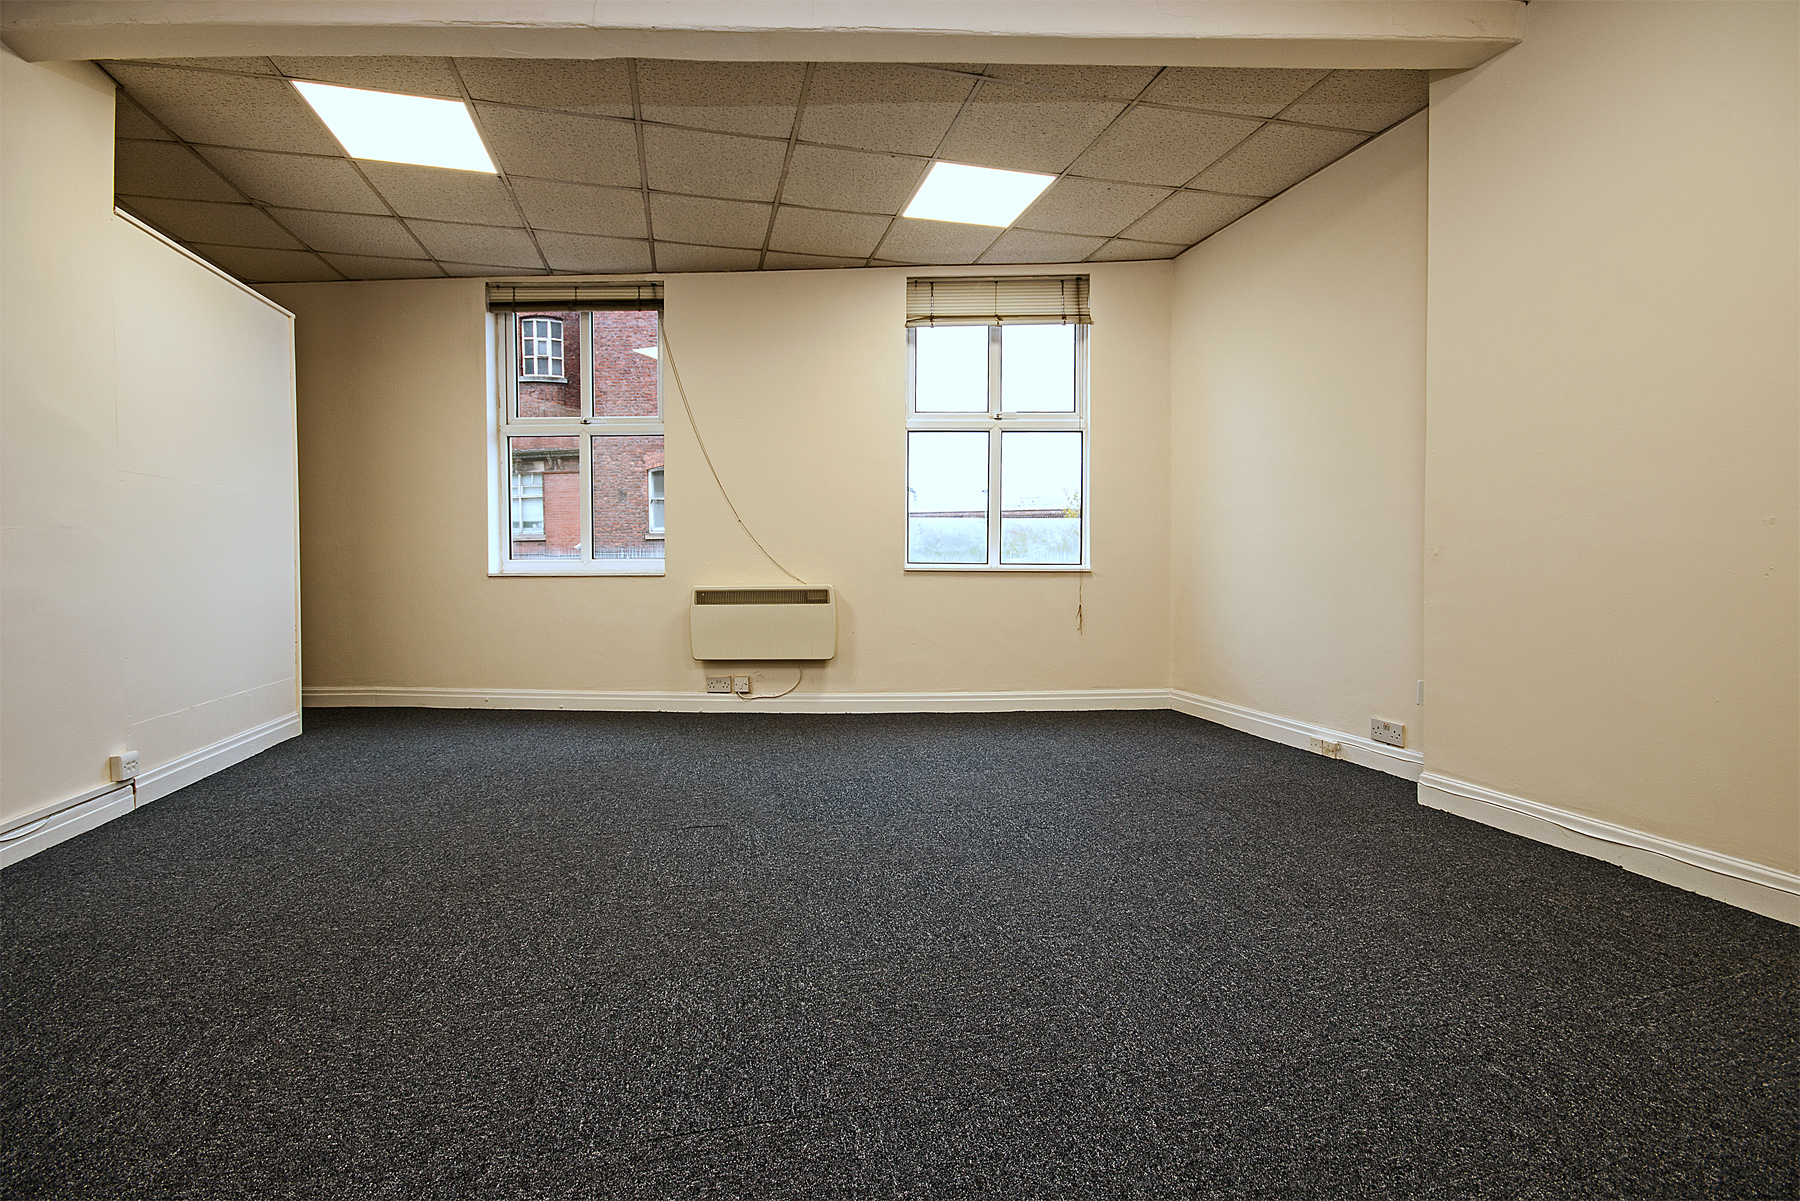 wellington rd sth 5 stockport first  floor office 1.jpg